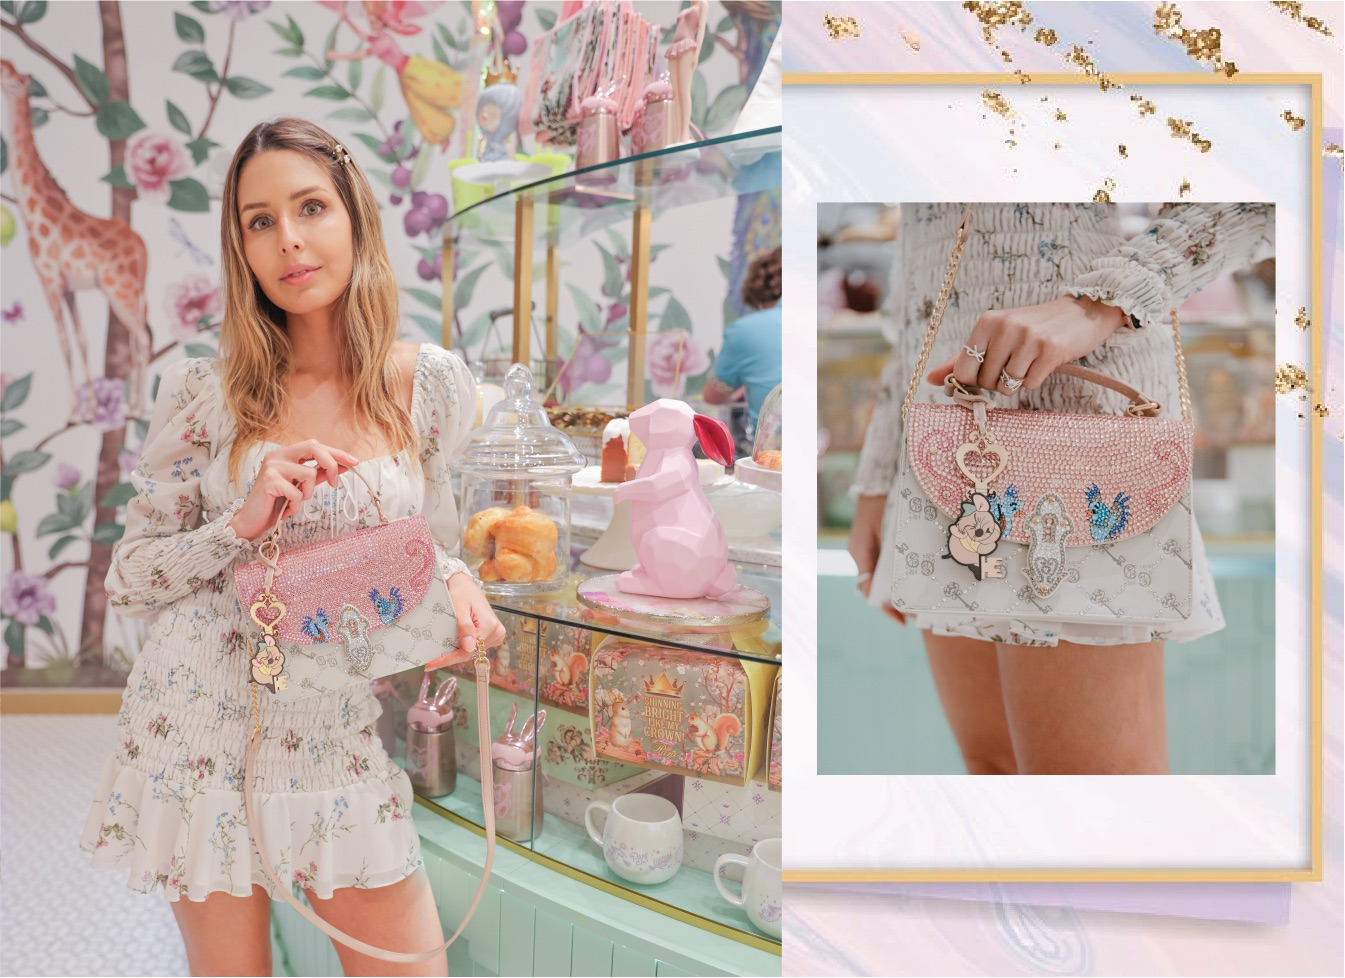 Introducing the New Crystalized Disney Cinderella Collections by Danielle Nicole 5